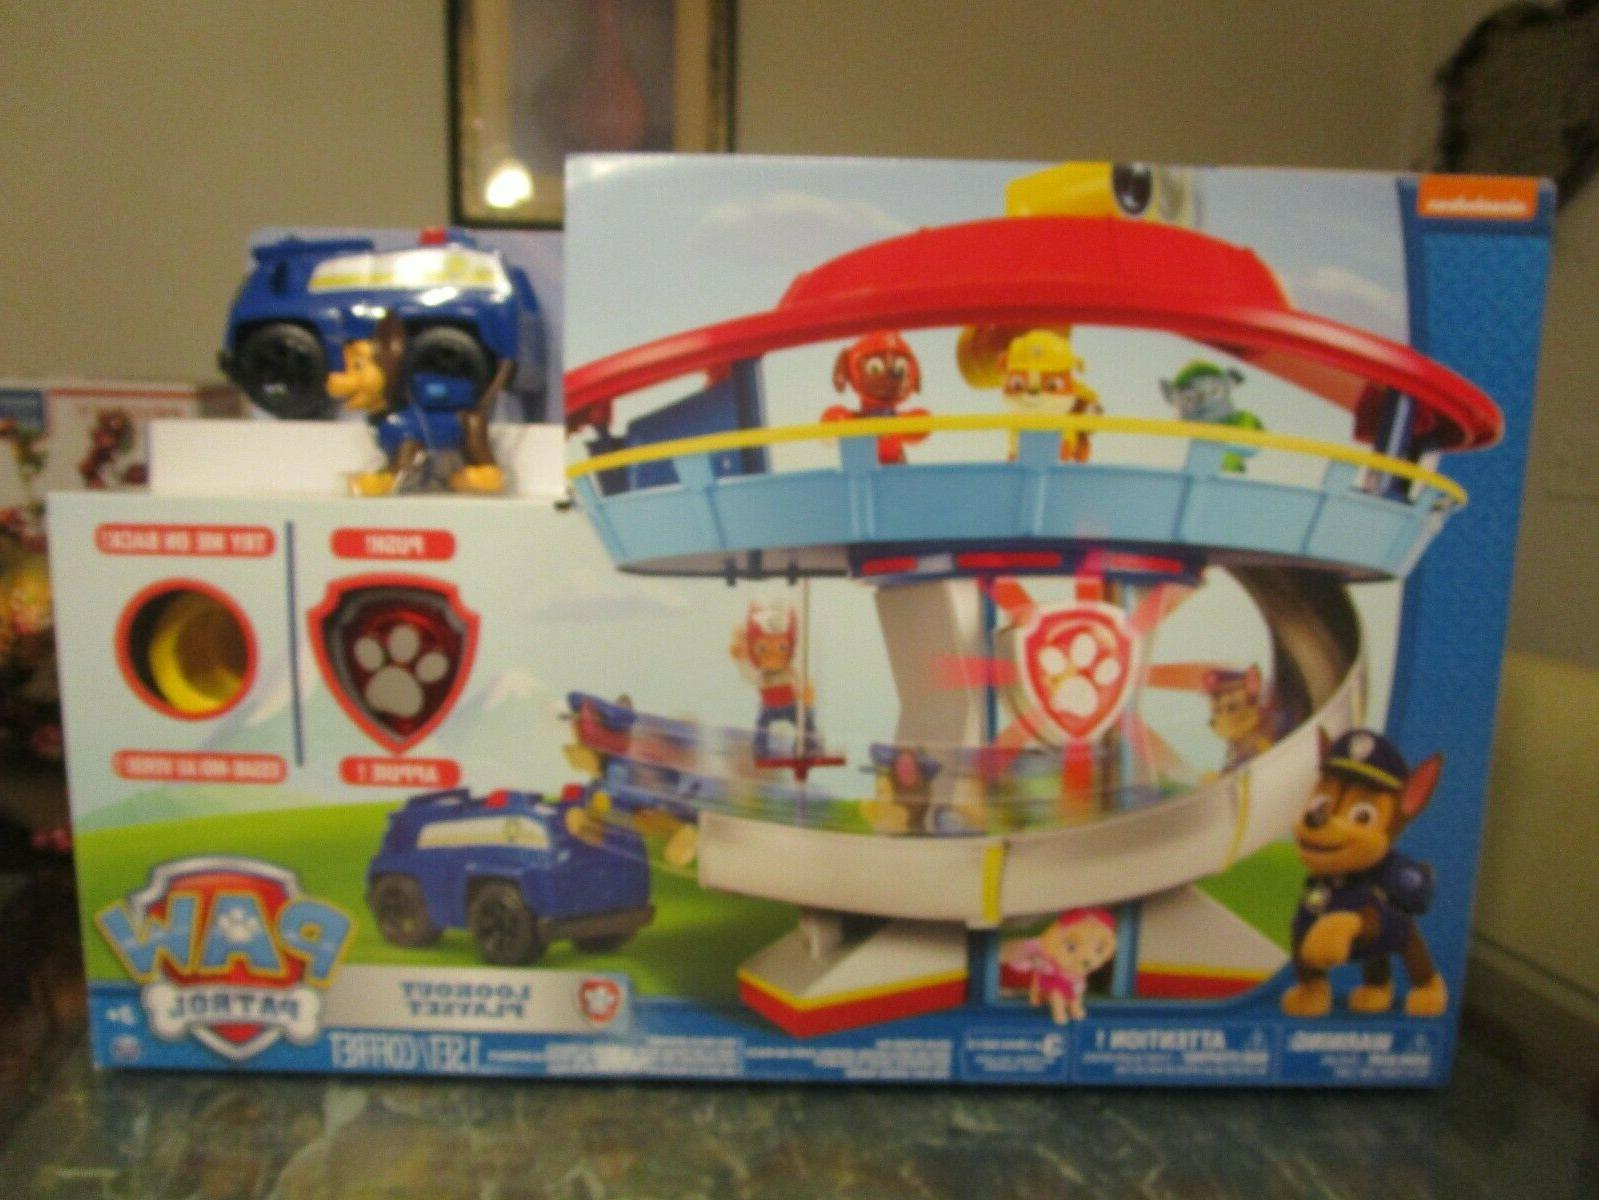 Tower Chase Vehicle, Lights Sounds Kid toy